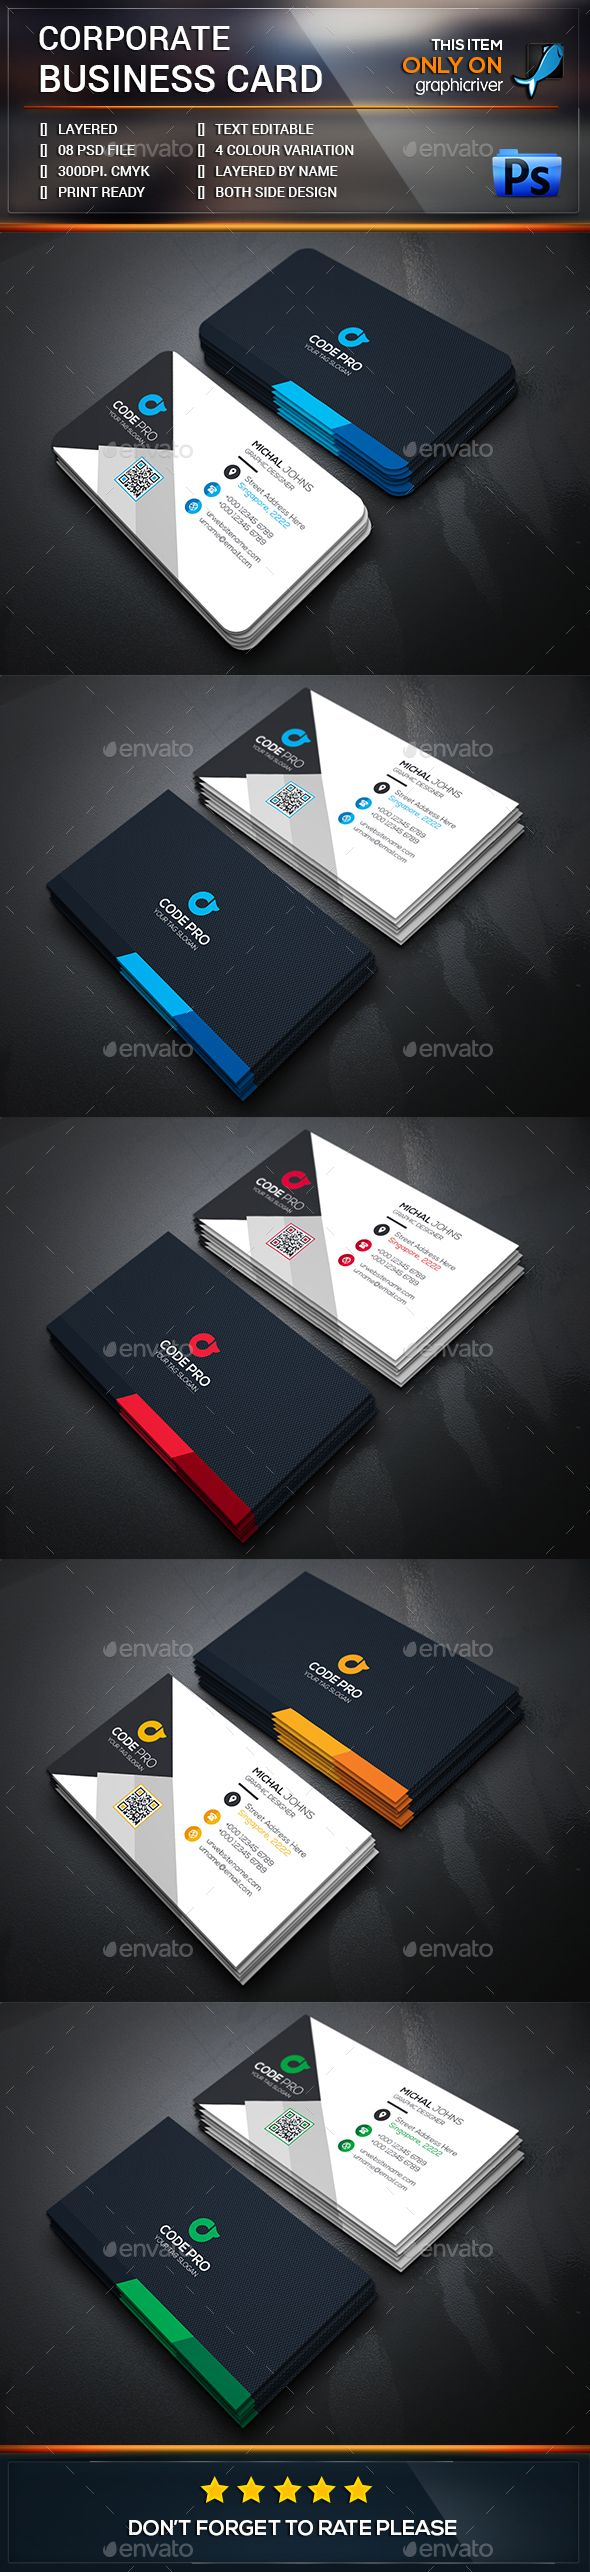 572 Best Business Card Inspiration Images On Pinterest Business